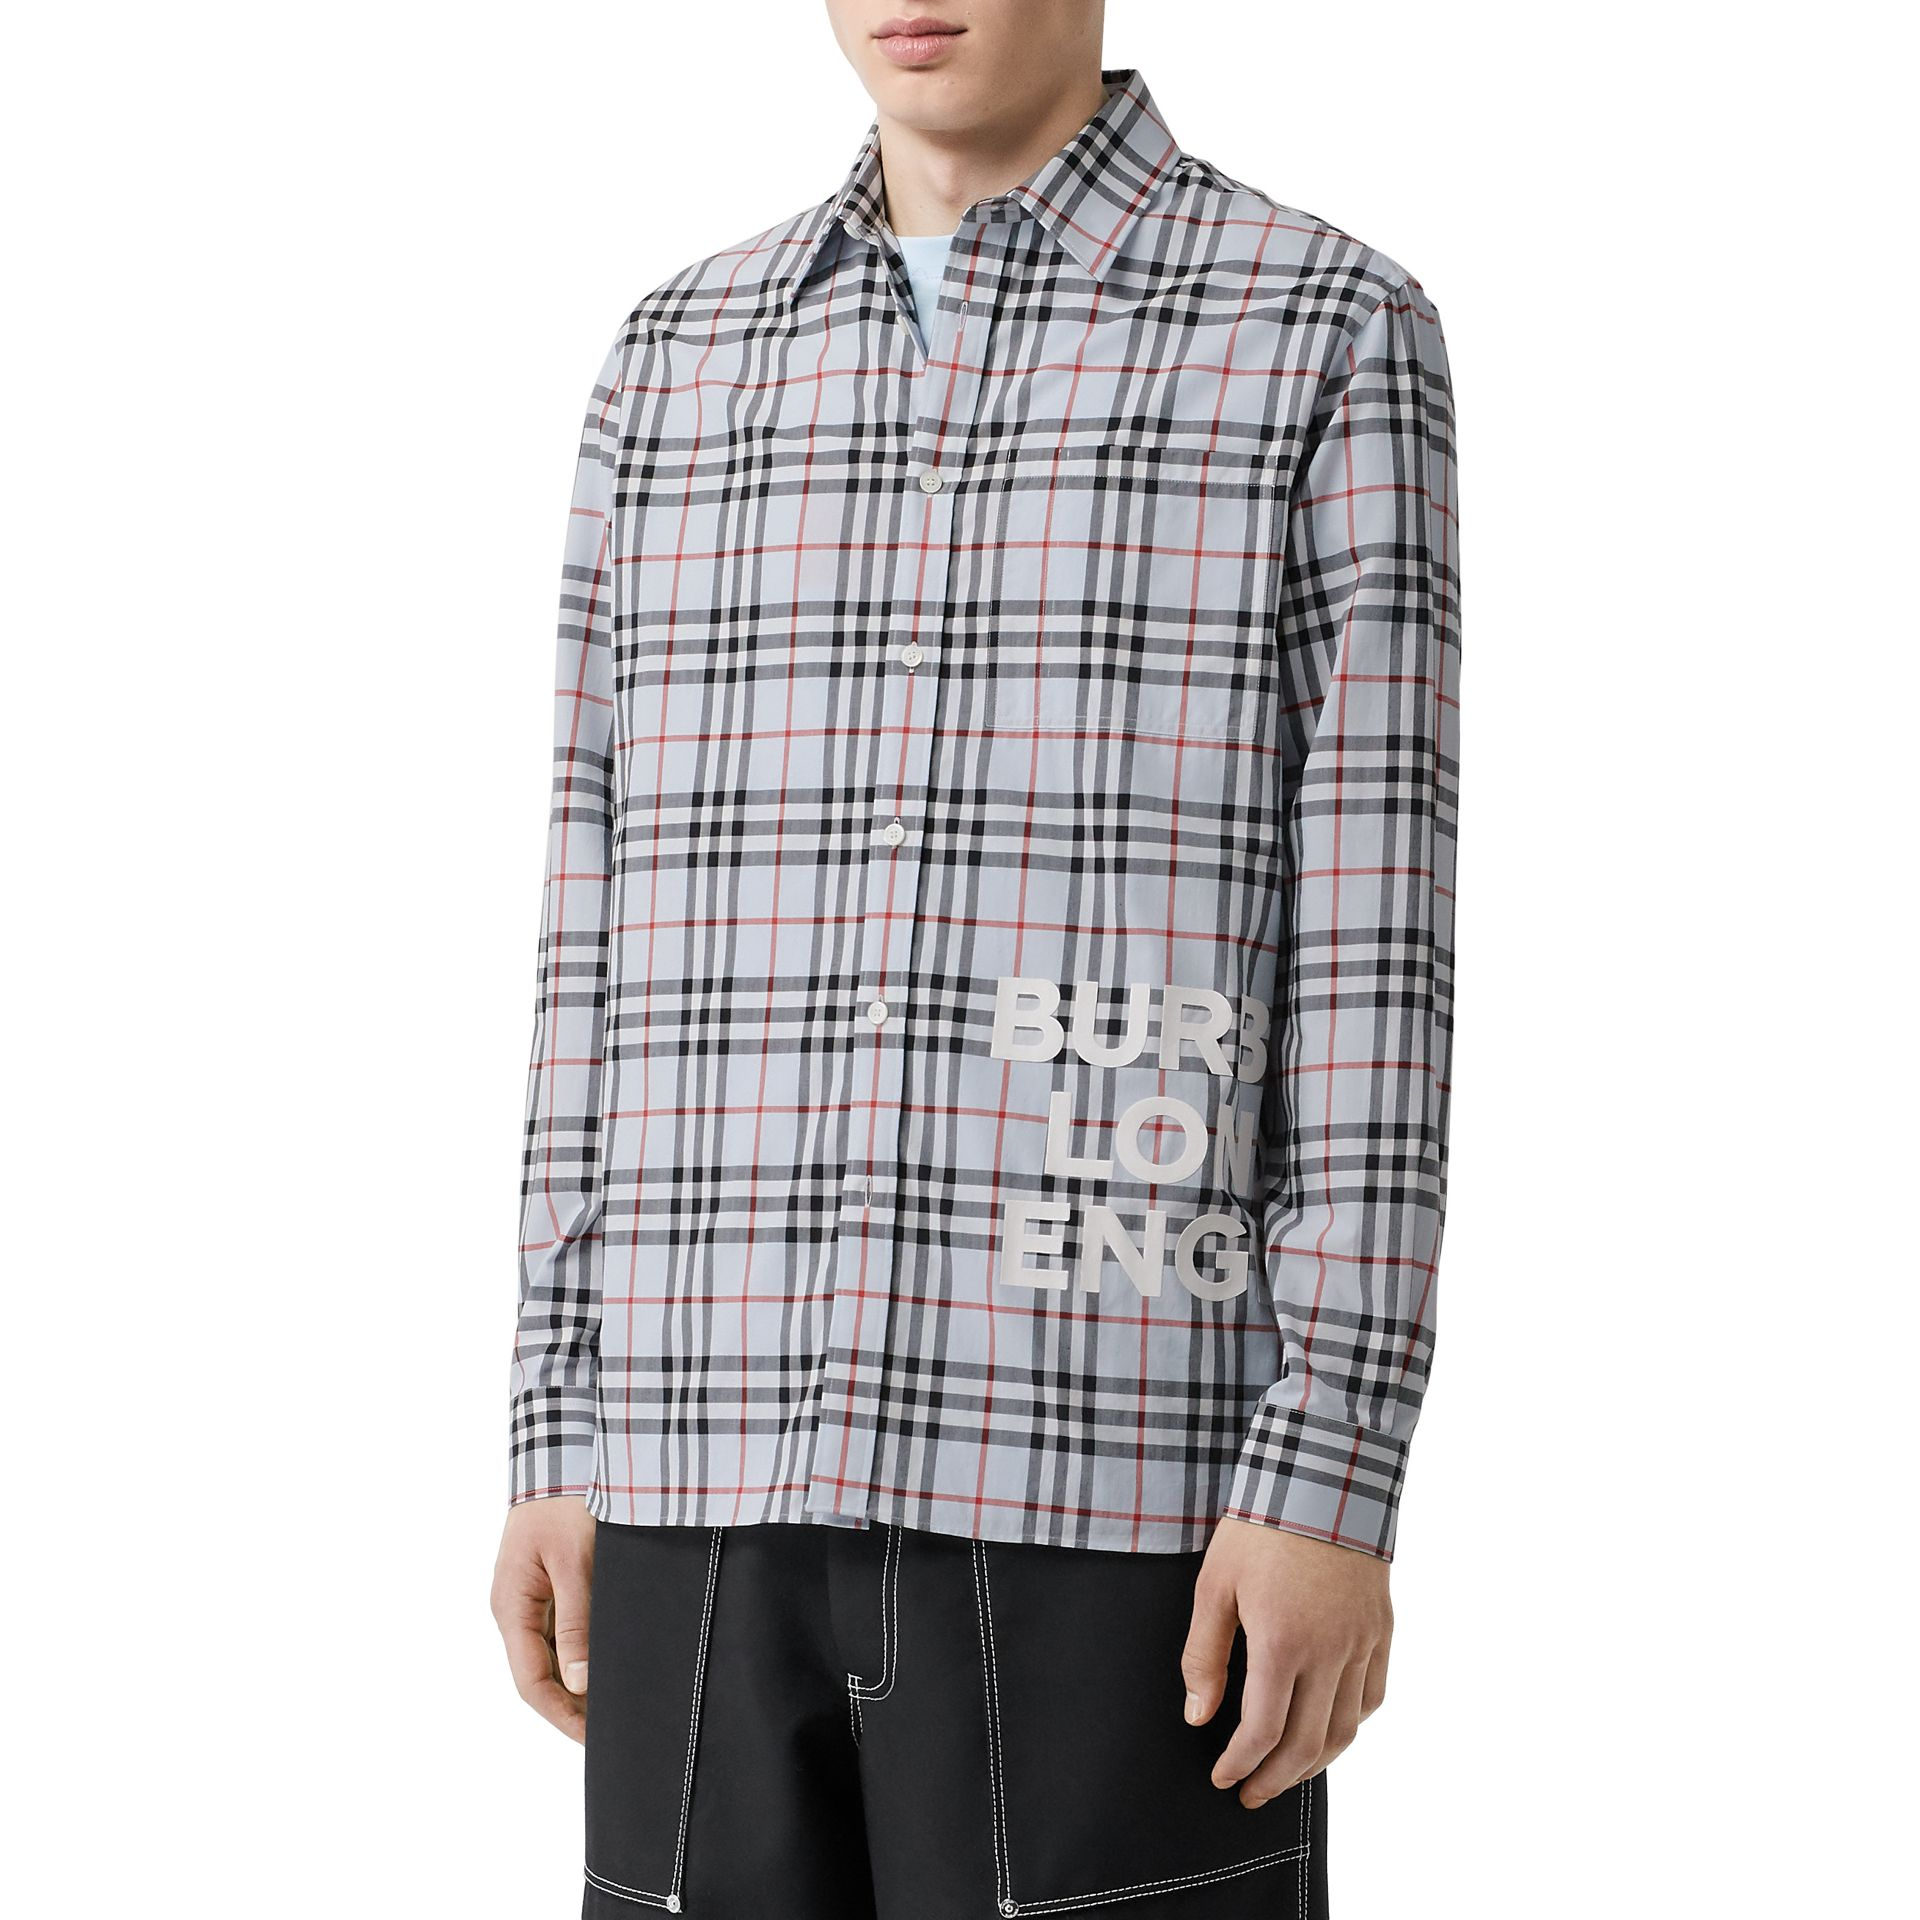 Logo Print Check Cotton Oversized Shirt in Pale Blue - Men | Burberry - gallery image 7